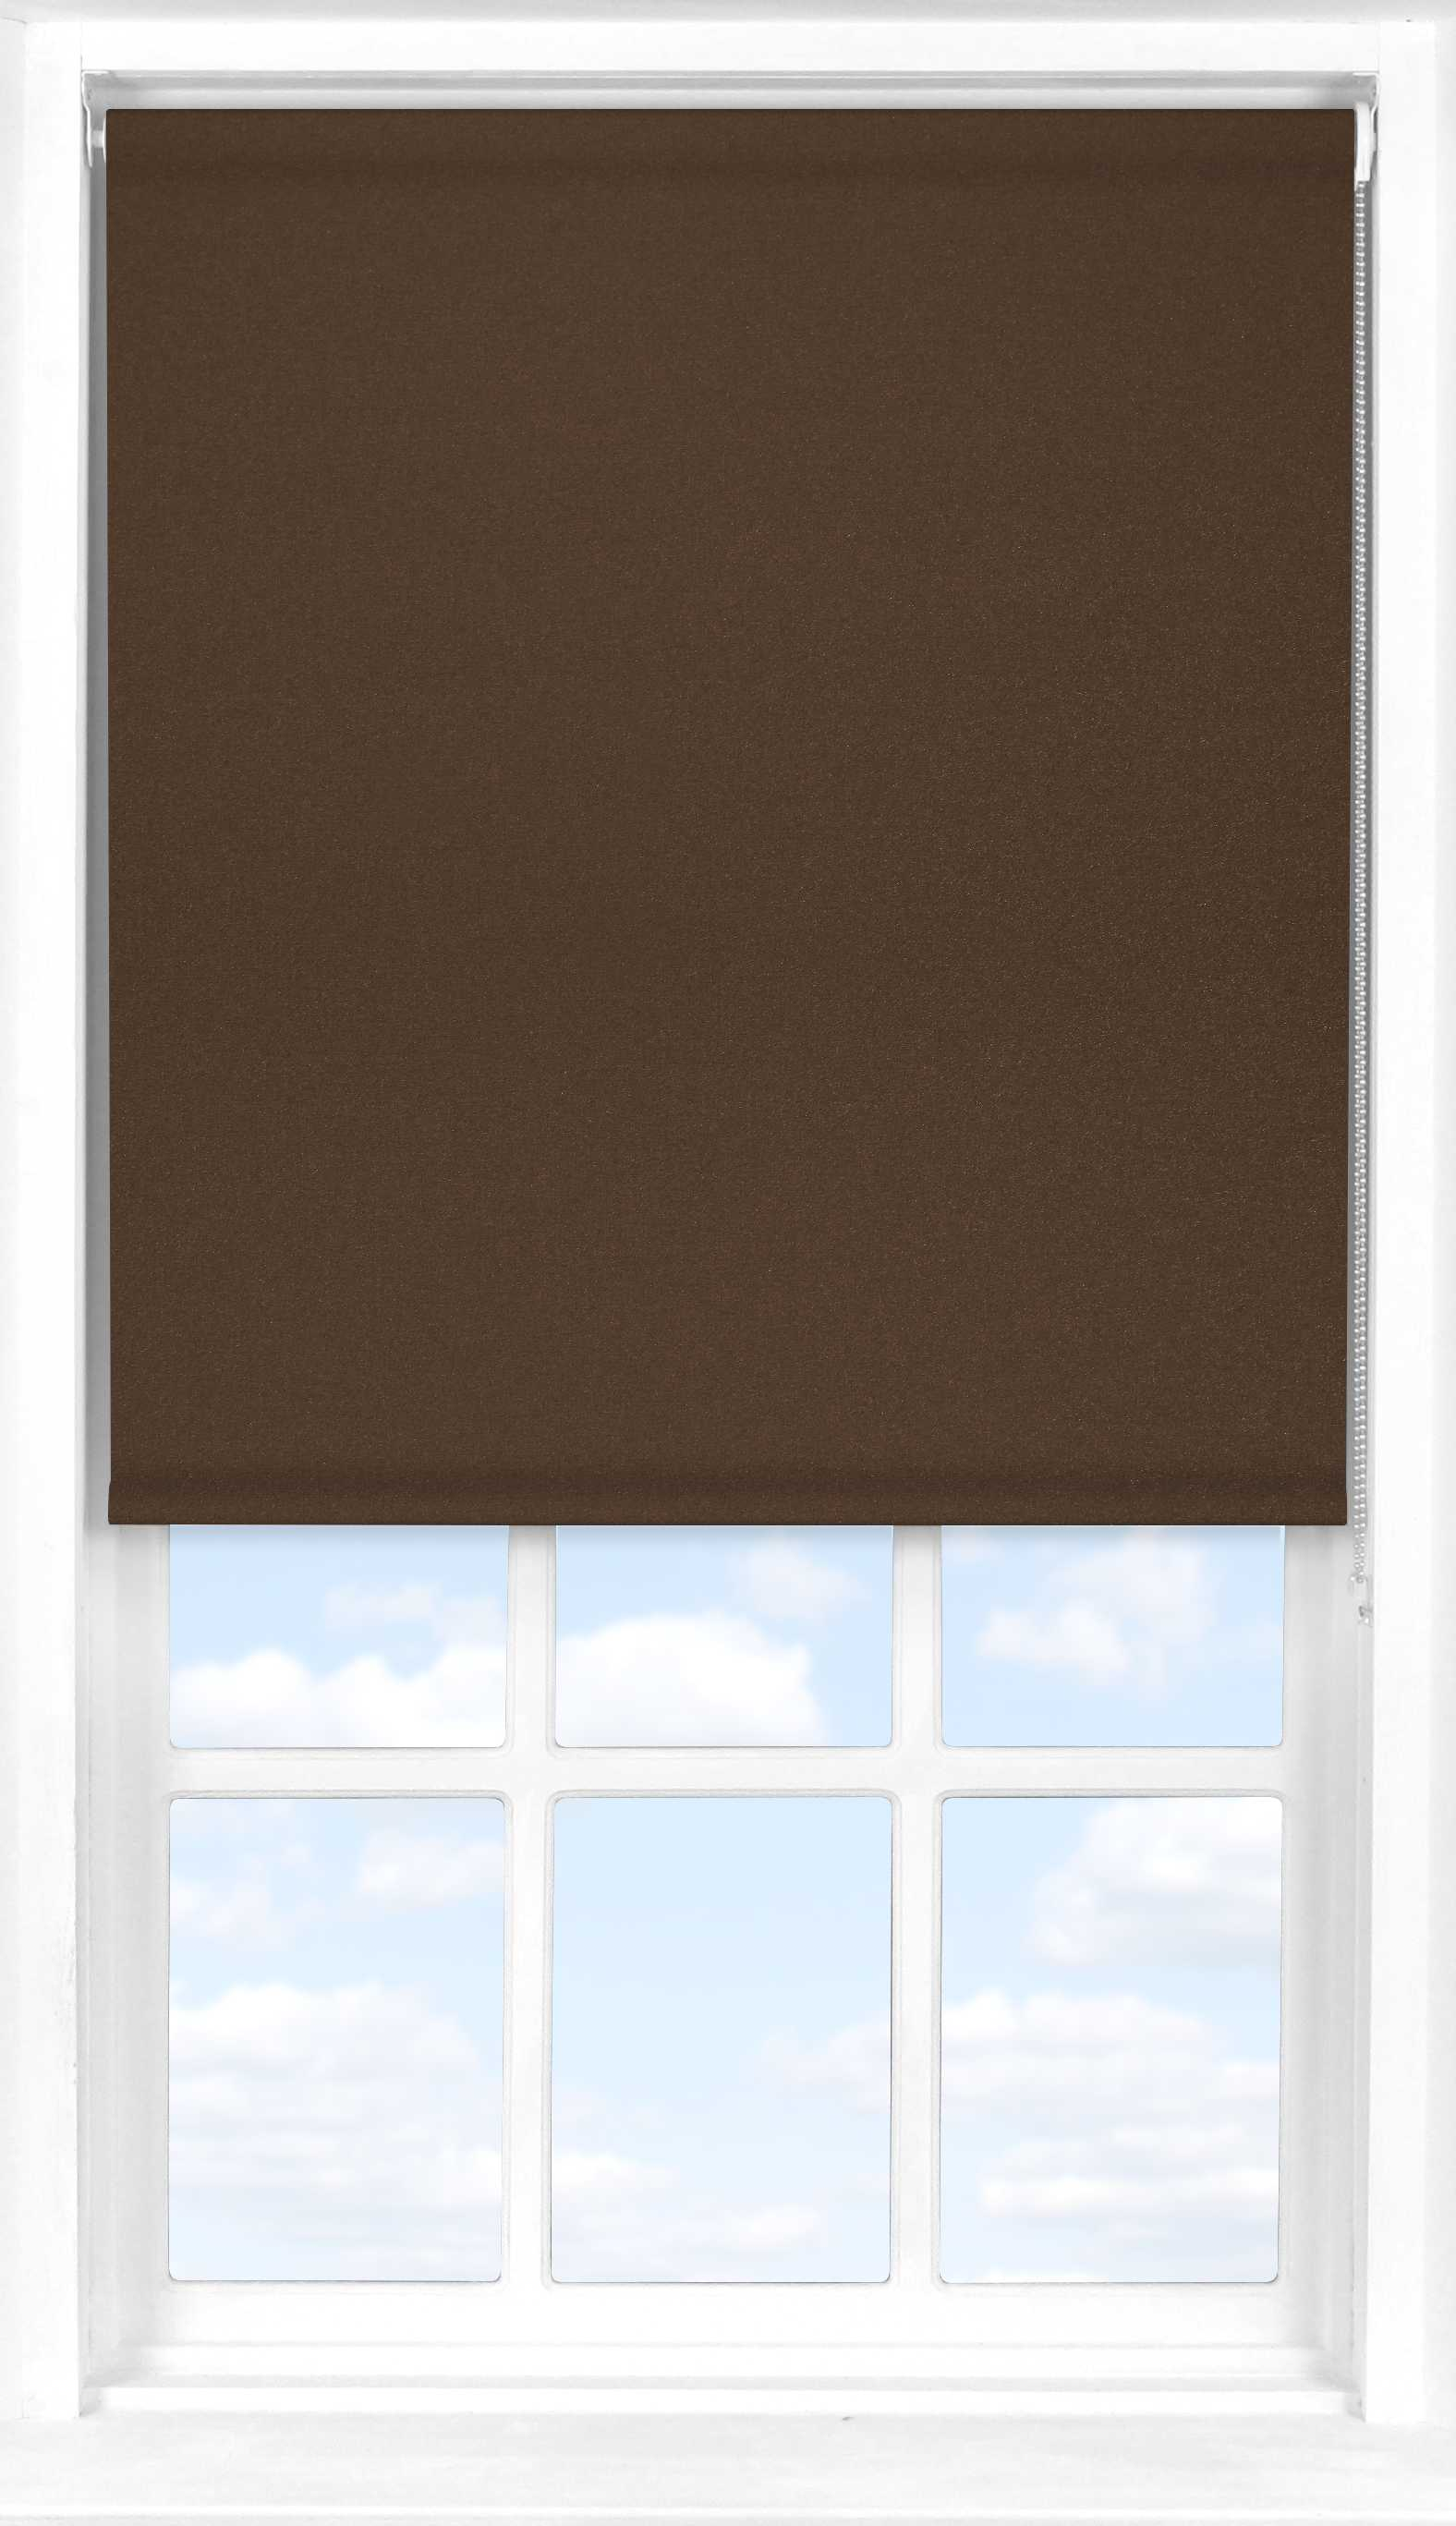 Roller Blind in Cocoa Bean Translucent